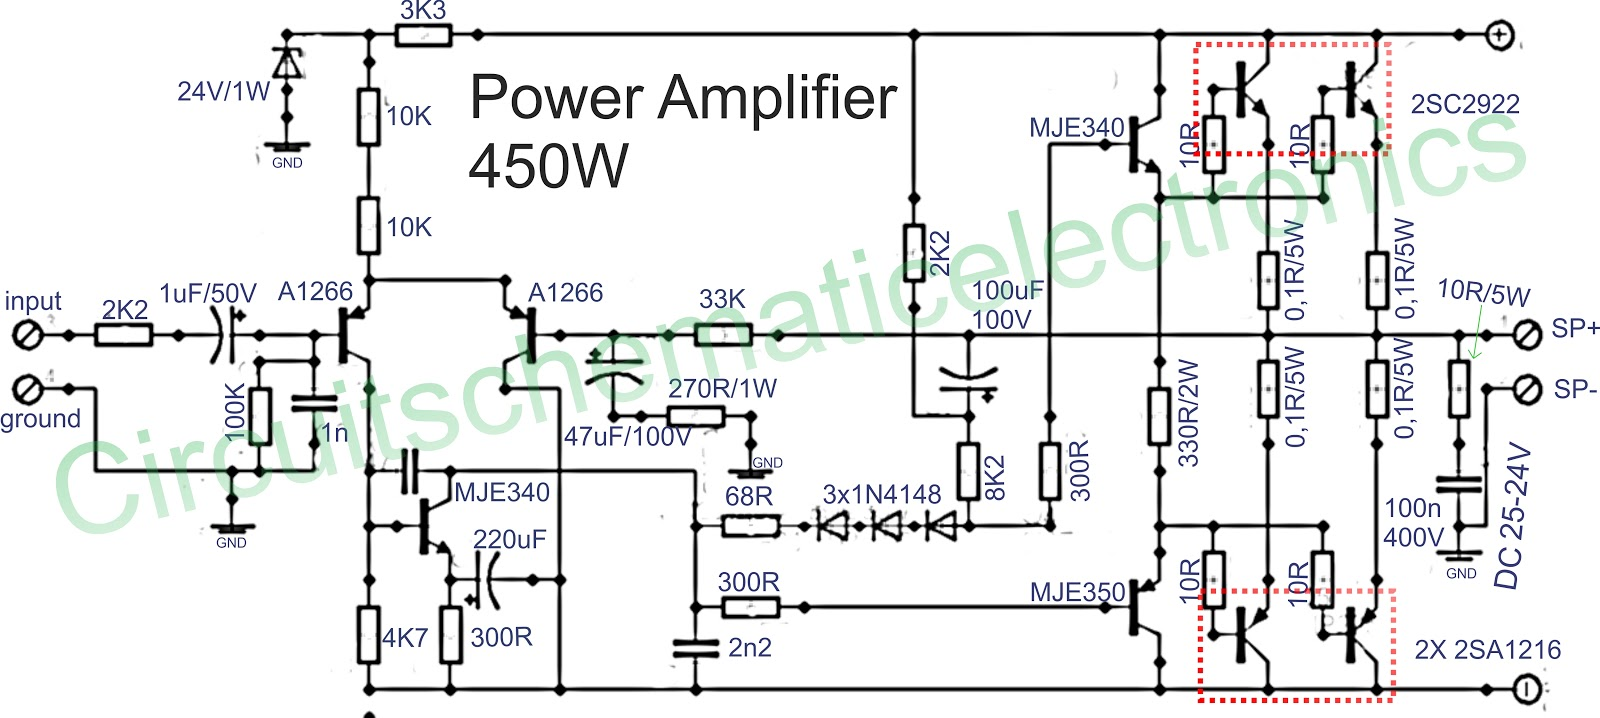 High+Power+amplifier+450+Watt+with+2+set+sanken power amplifier 450w with sanken electronic circuit